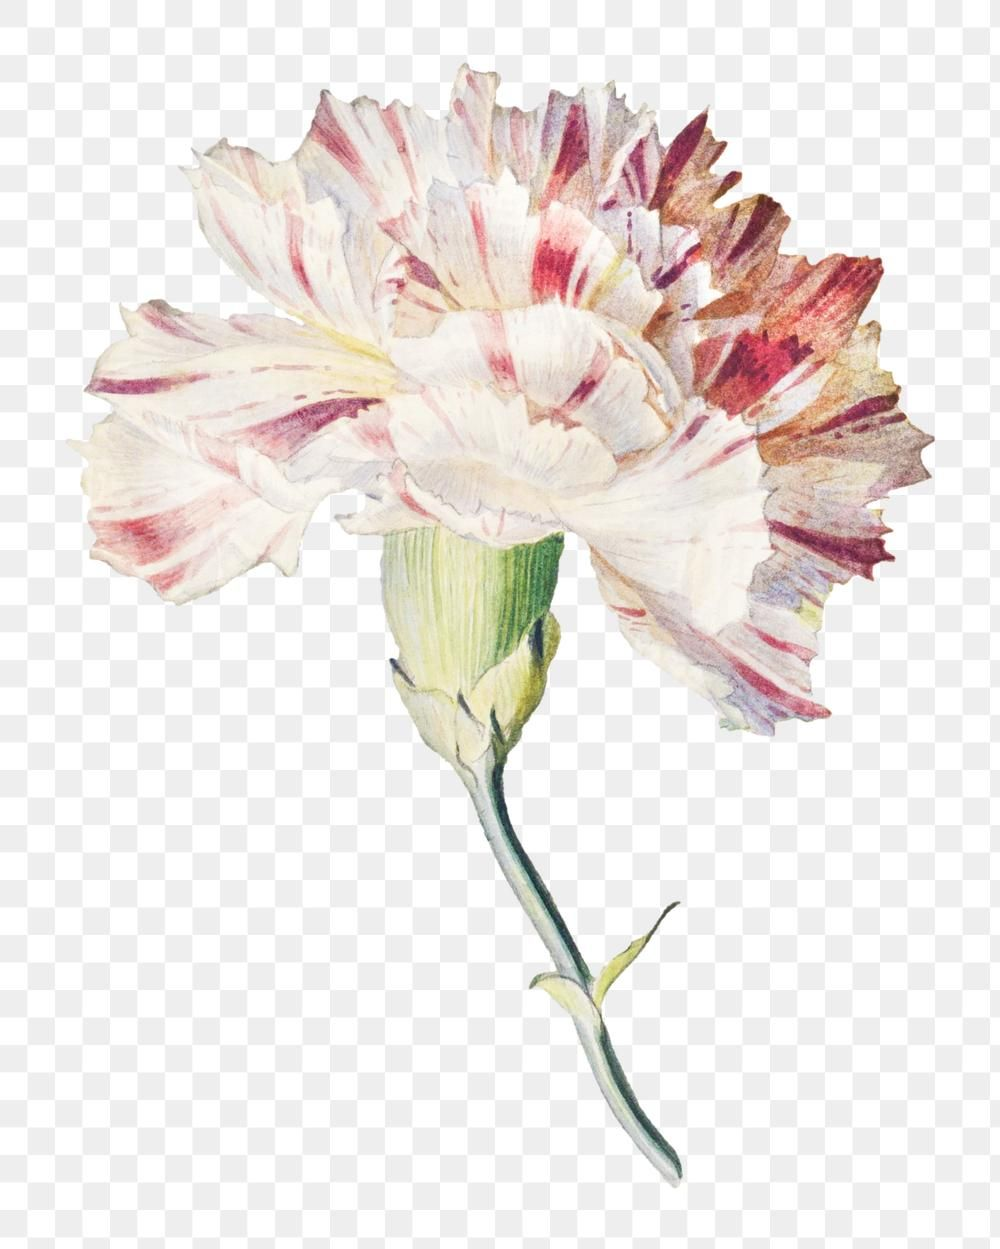 Blooming Carnation Design Element Free Image By Rawpixel Com Aom Woraluck In 2020 Carnation Flower Design Element Border Design